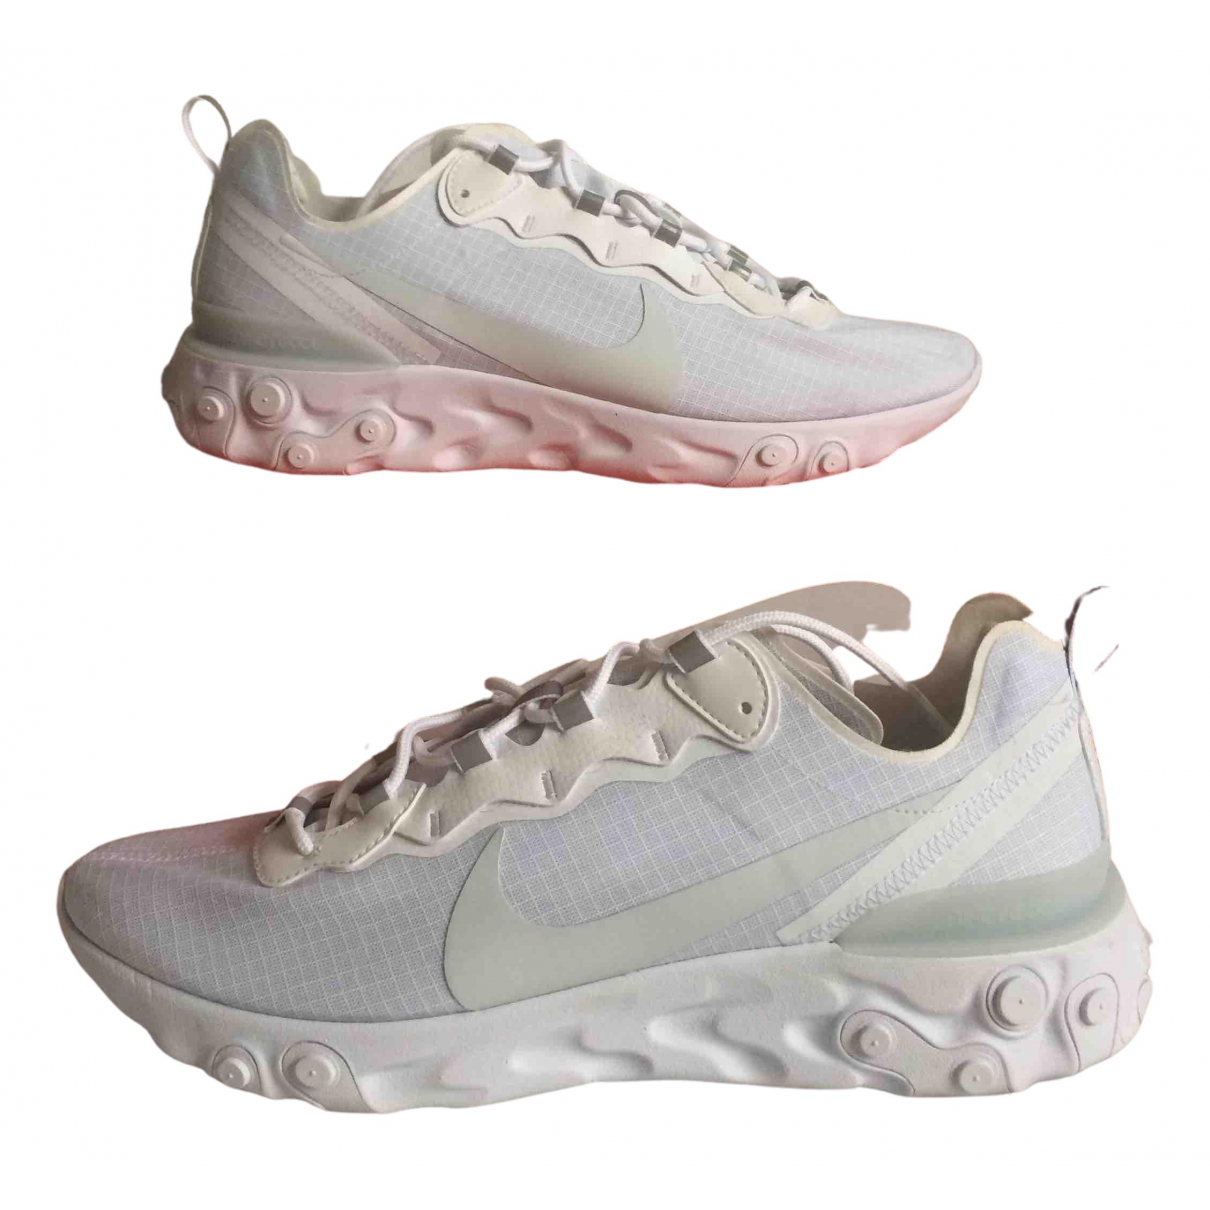 Nike React element 55 White Rubber Trainers for Men 46 EU